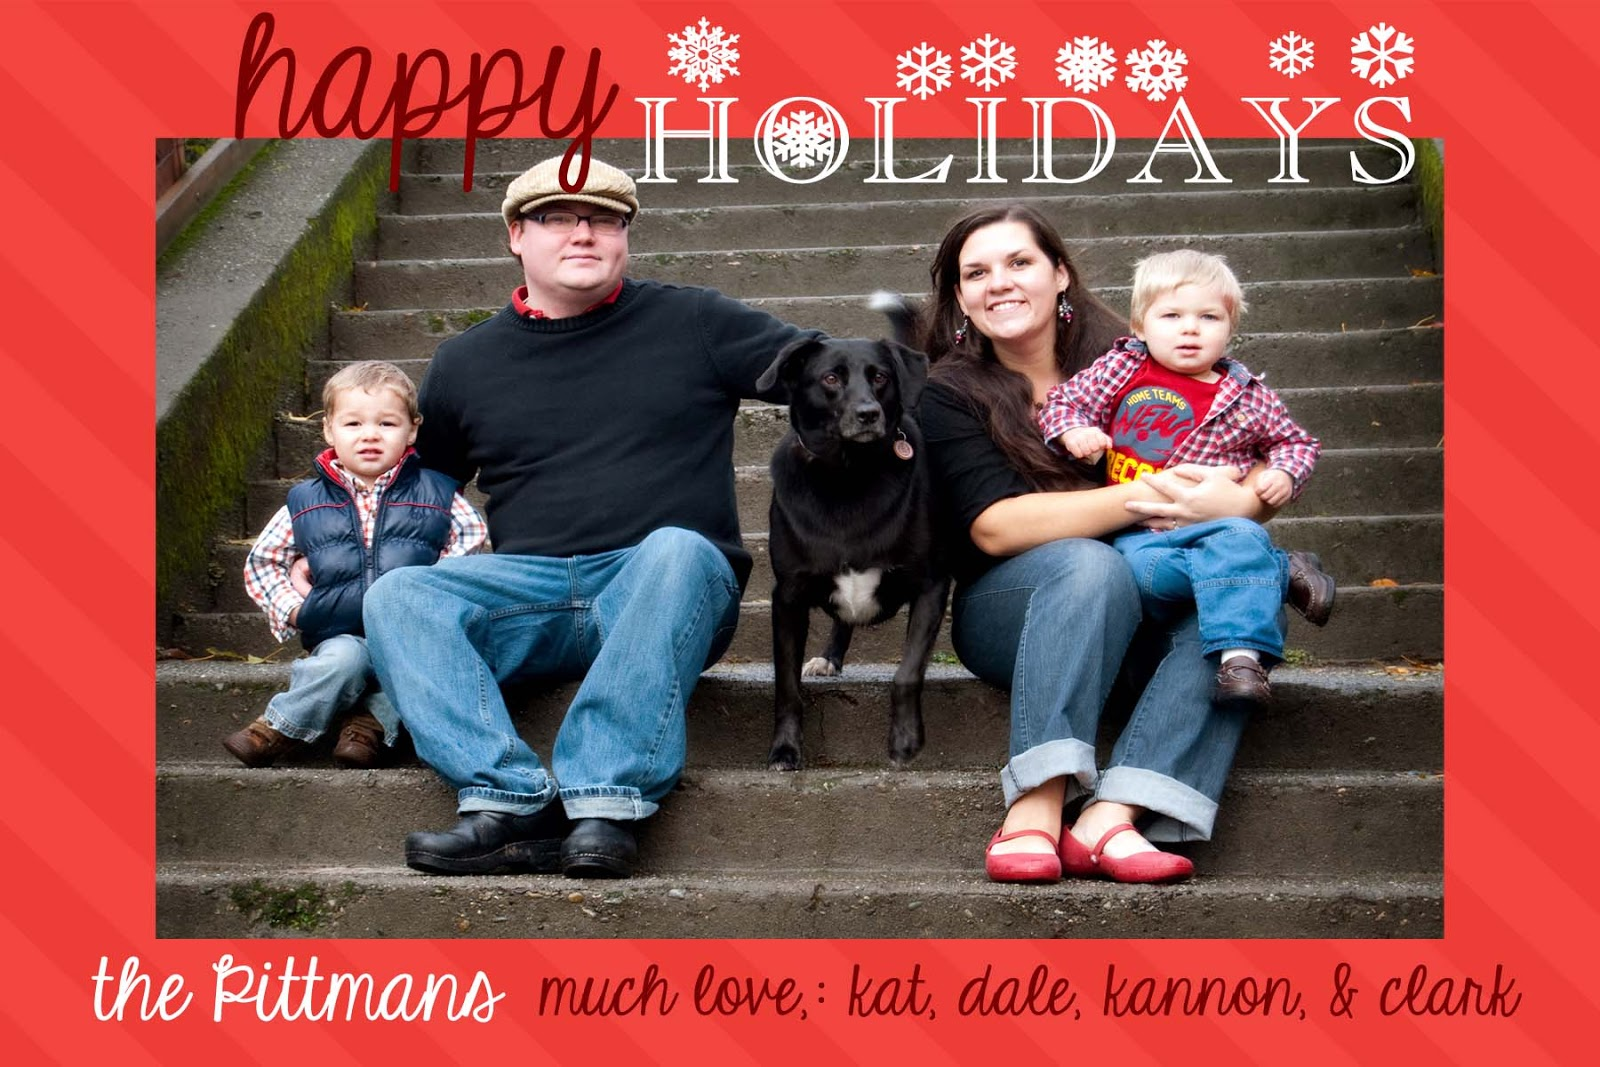 free christmas card template - Free Christmas Card Templates For Photographers